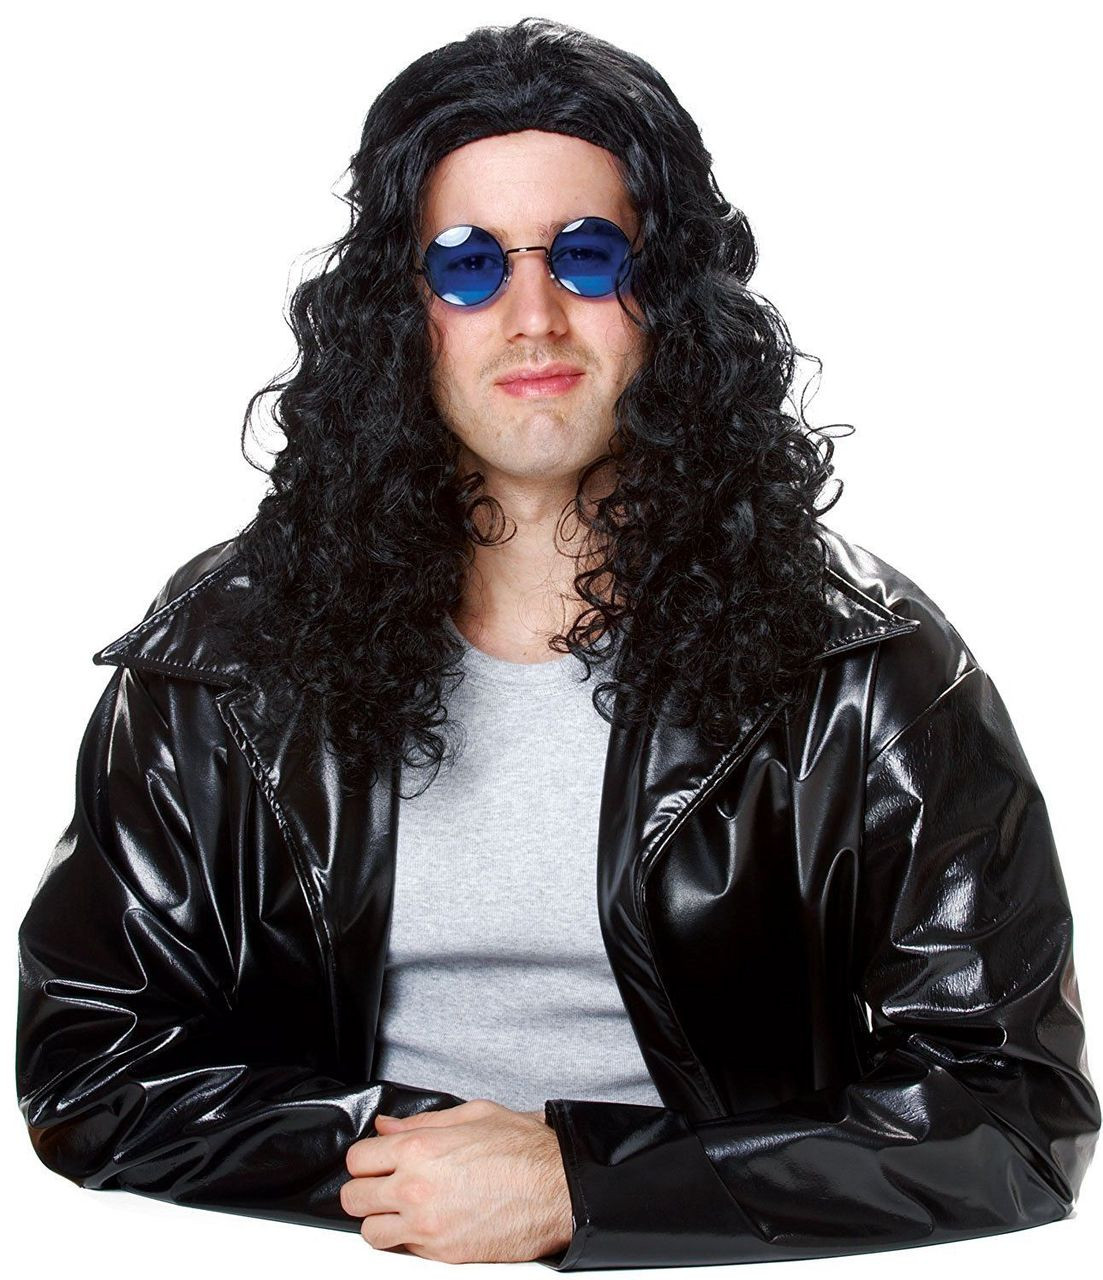 c182c57a989 Costume Culture 80's Wig Iconic DJ Black Adult Long Hair Halloween Disc  21006